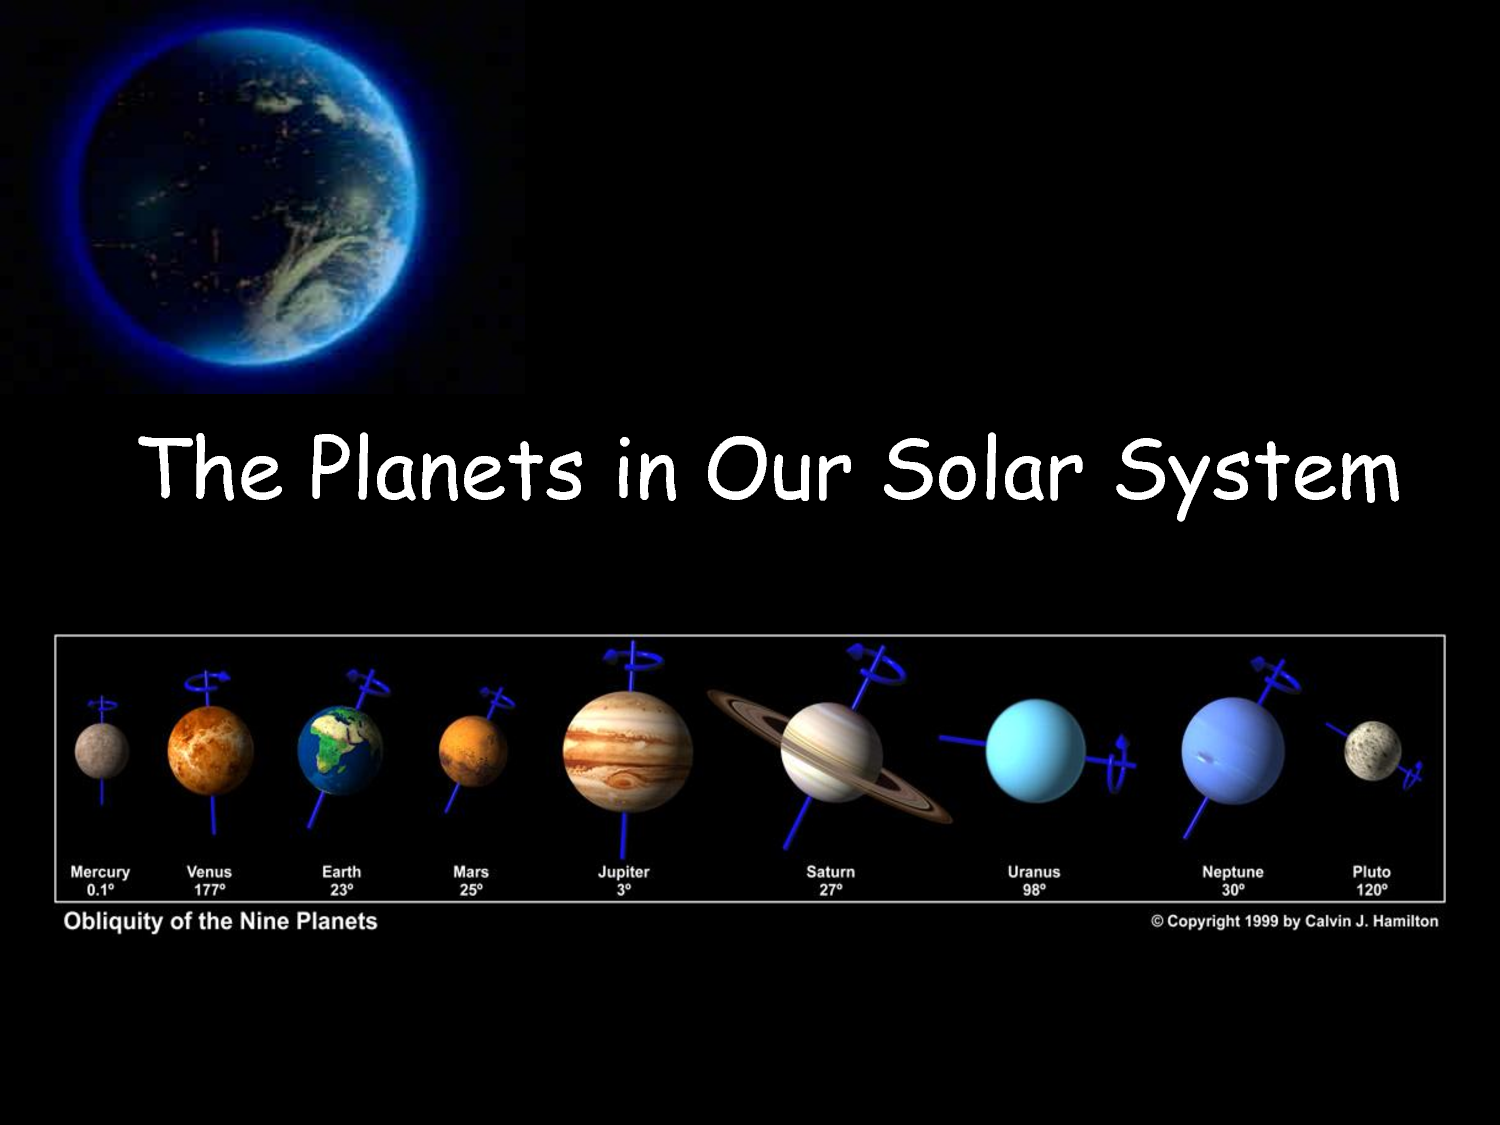 What Do The Planets Look Like